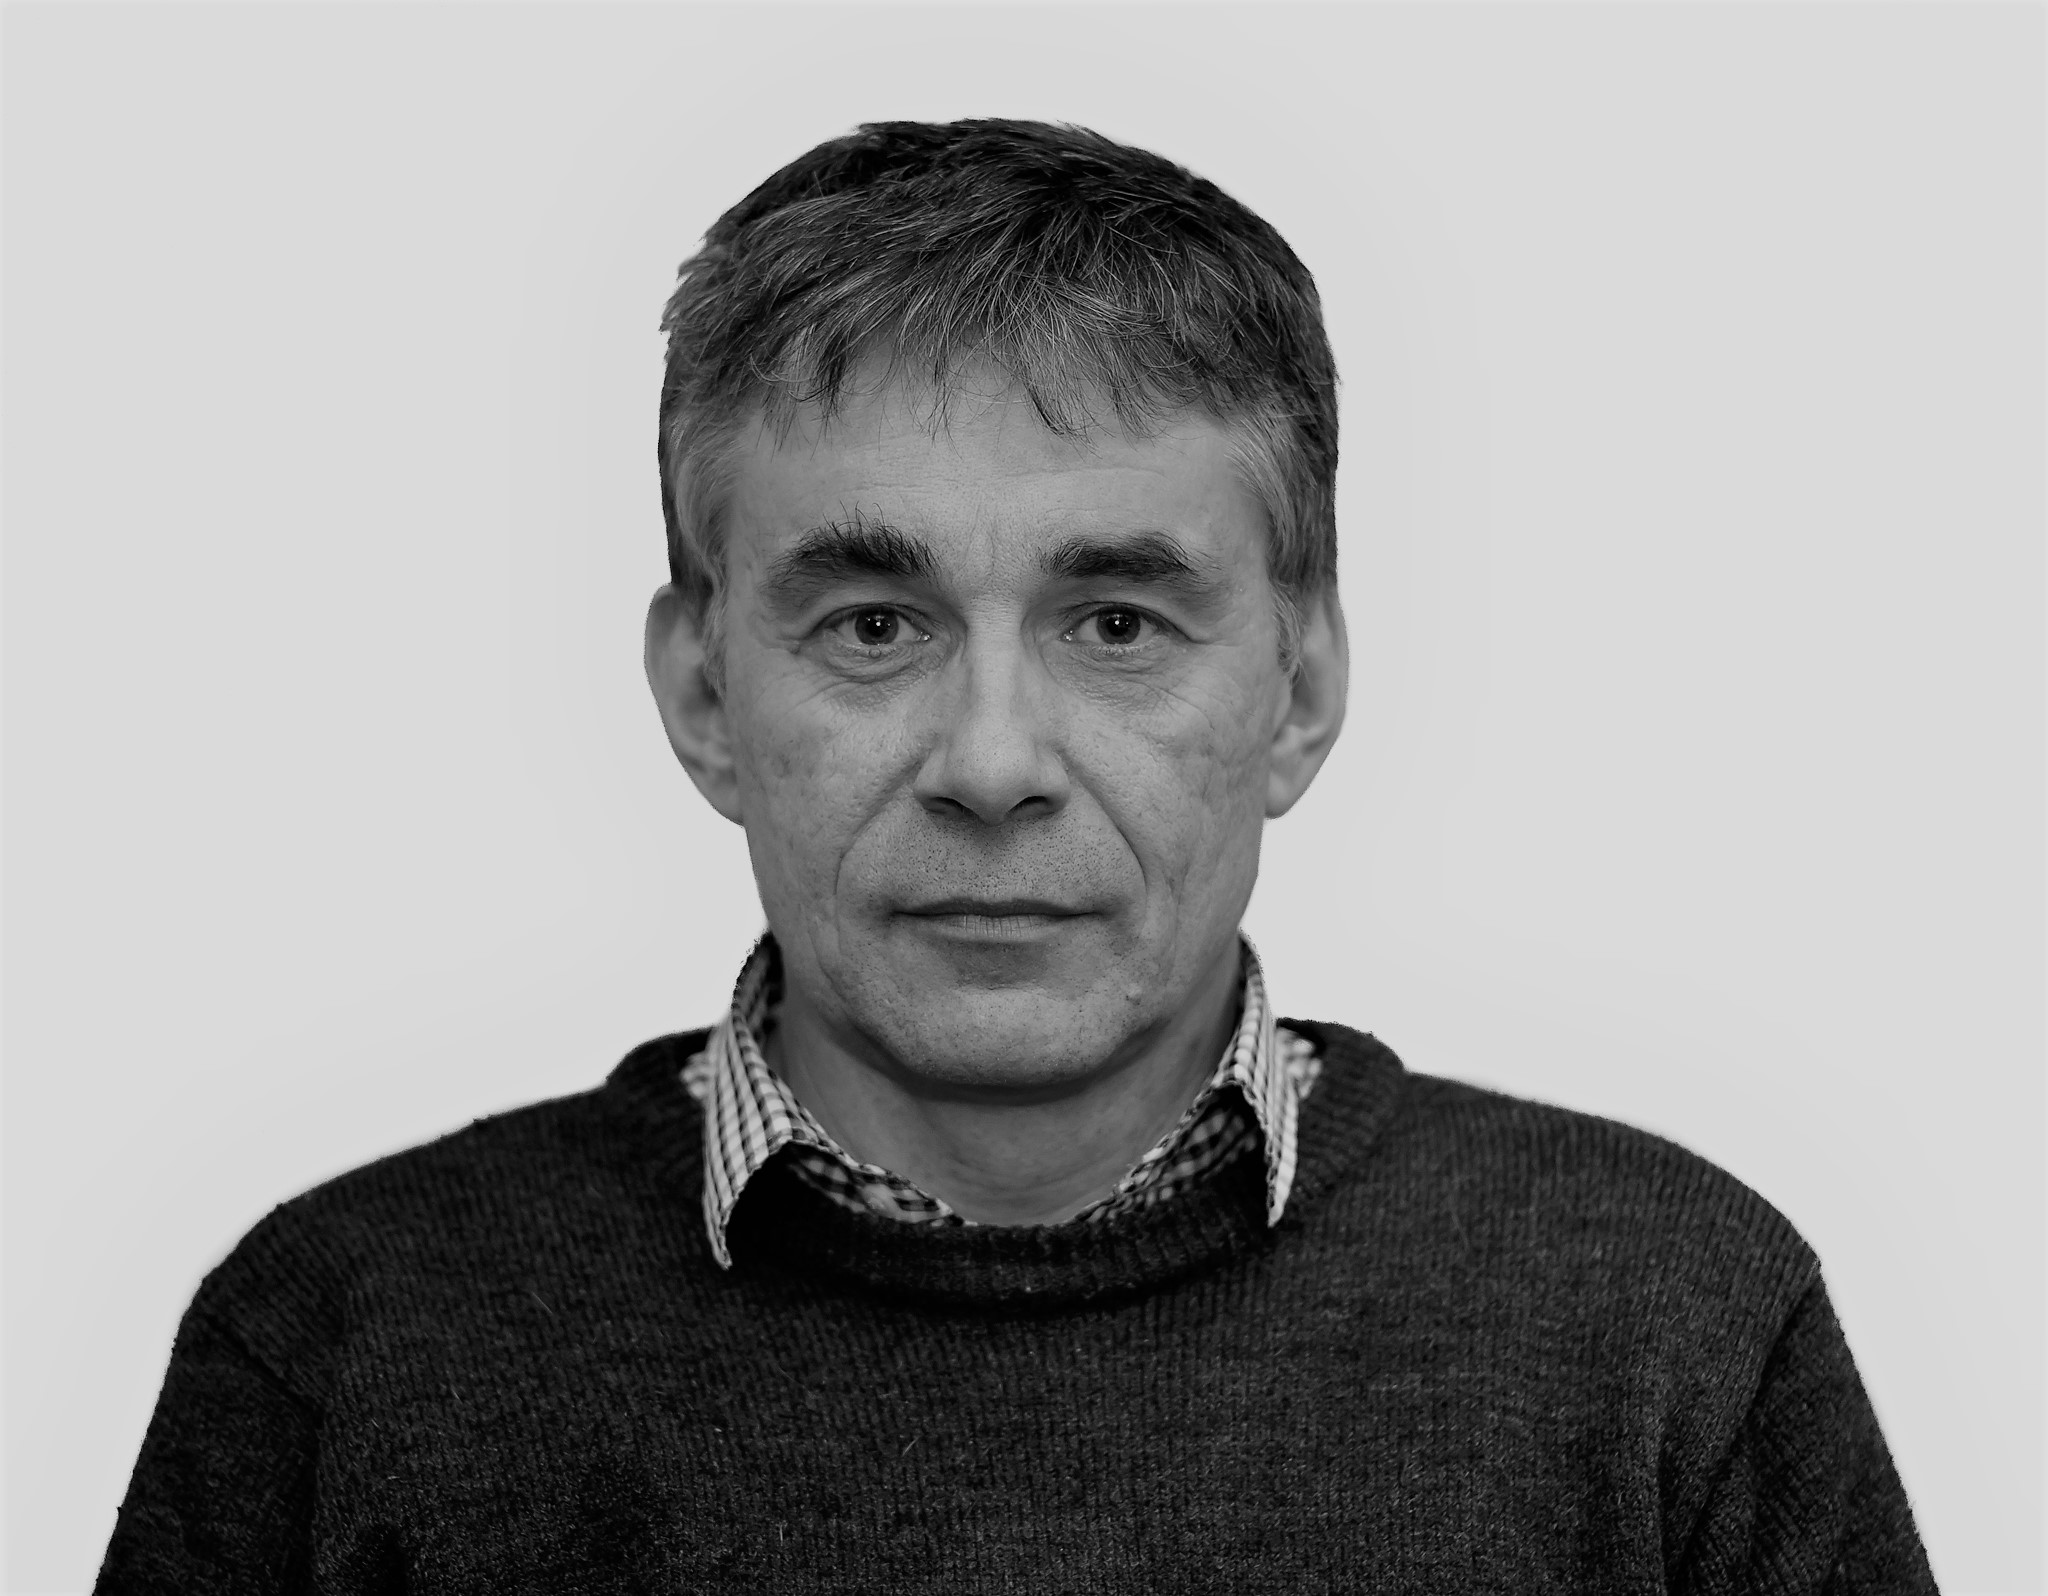 Michael Spearpoint (B&W).jpg